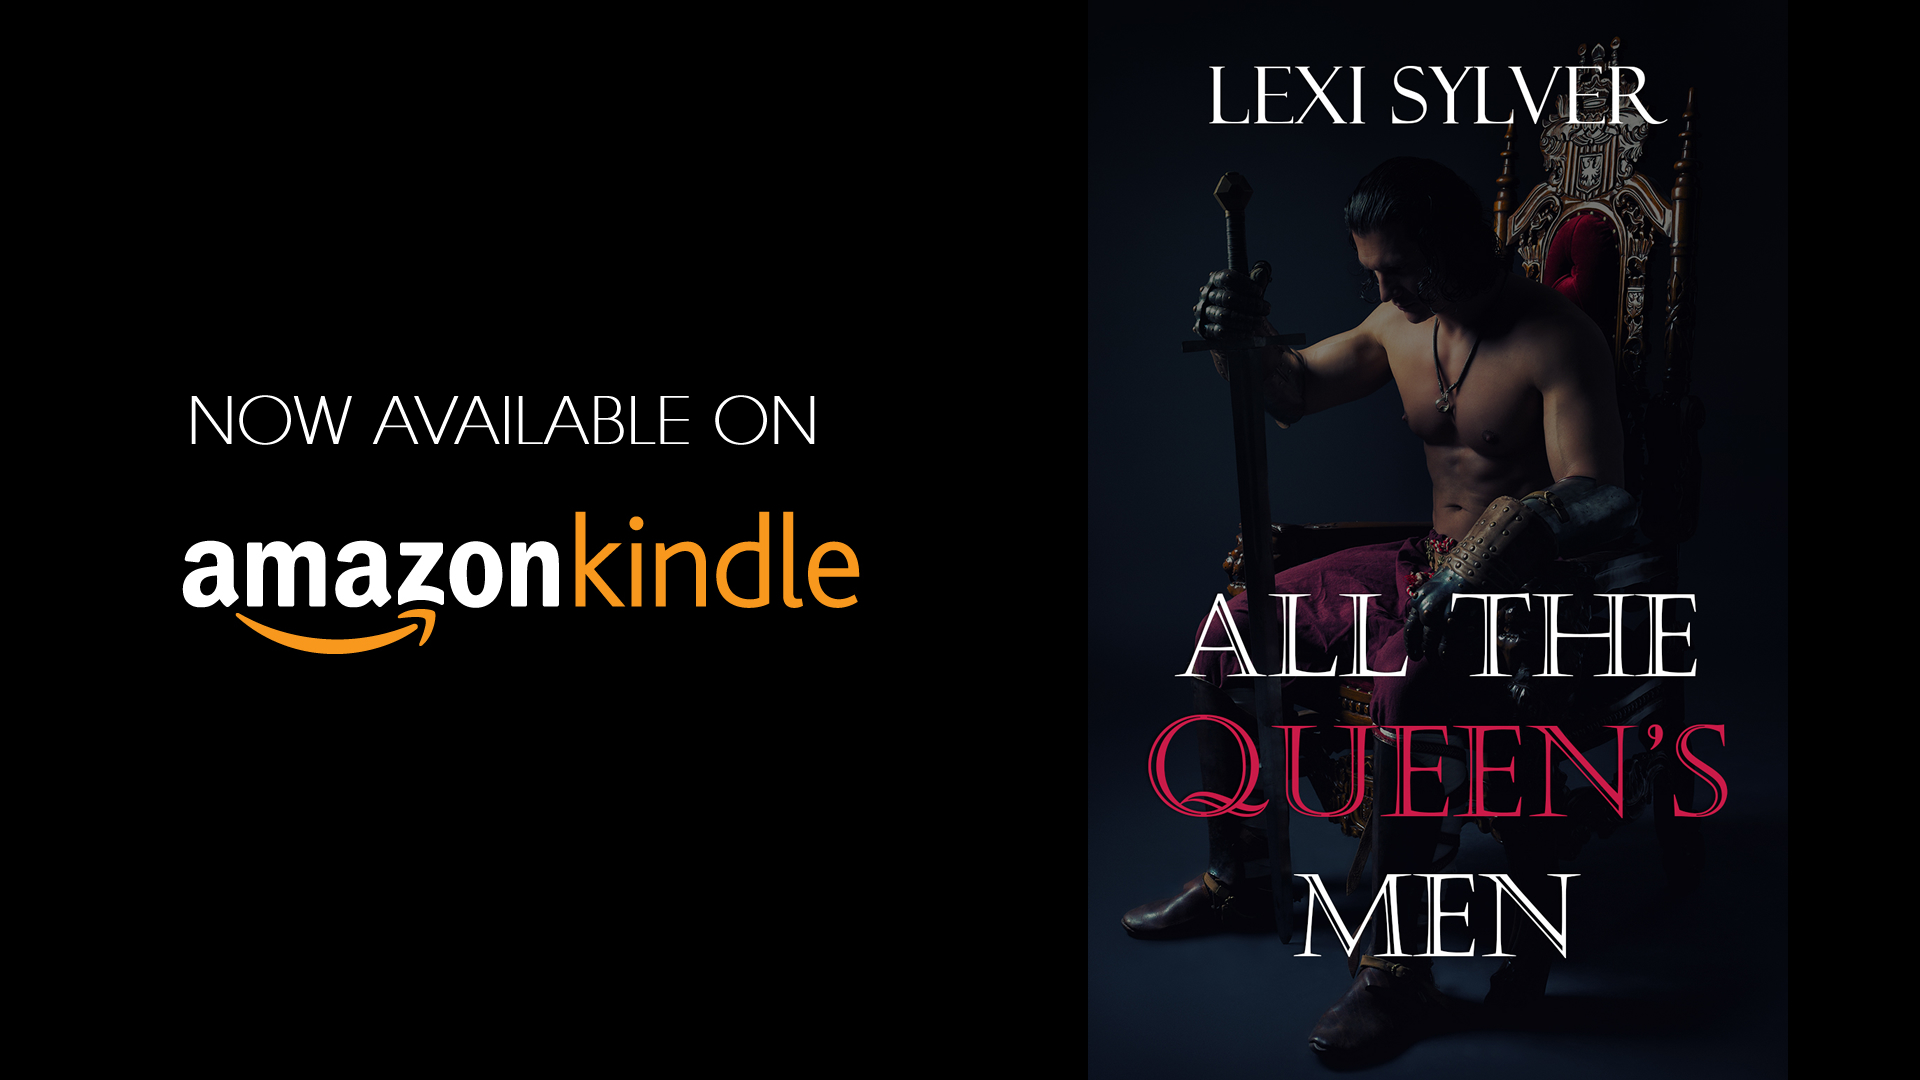 All The Queen's Men by Lexi Sylver | Available on Amazon Kindle | Erotic Short Story